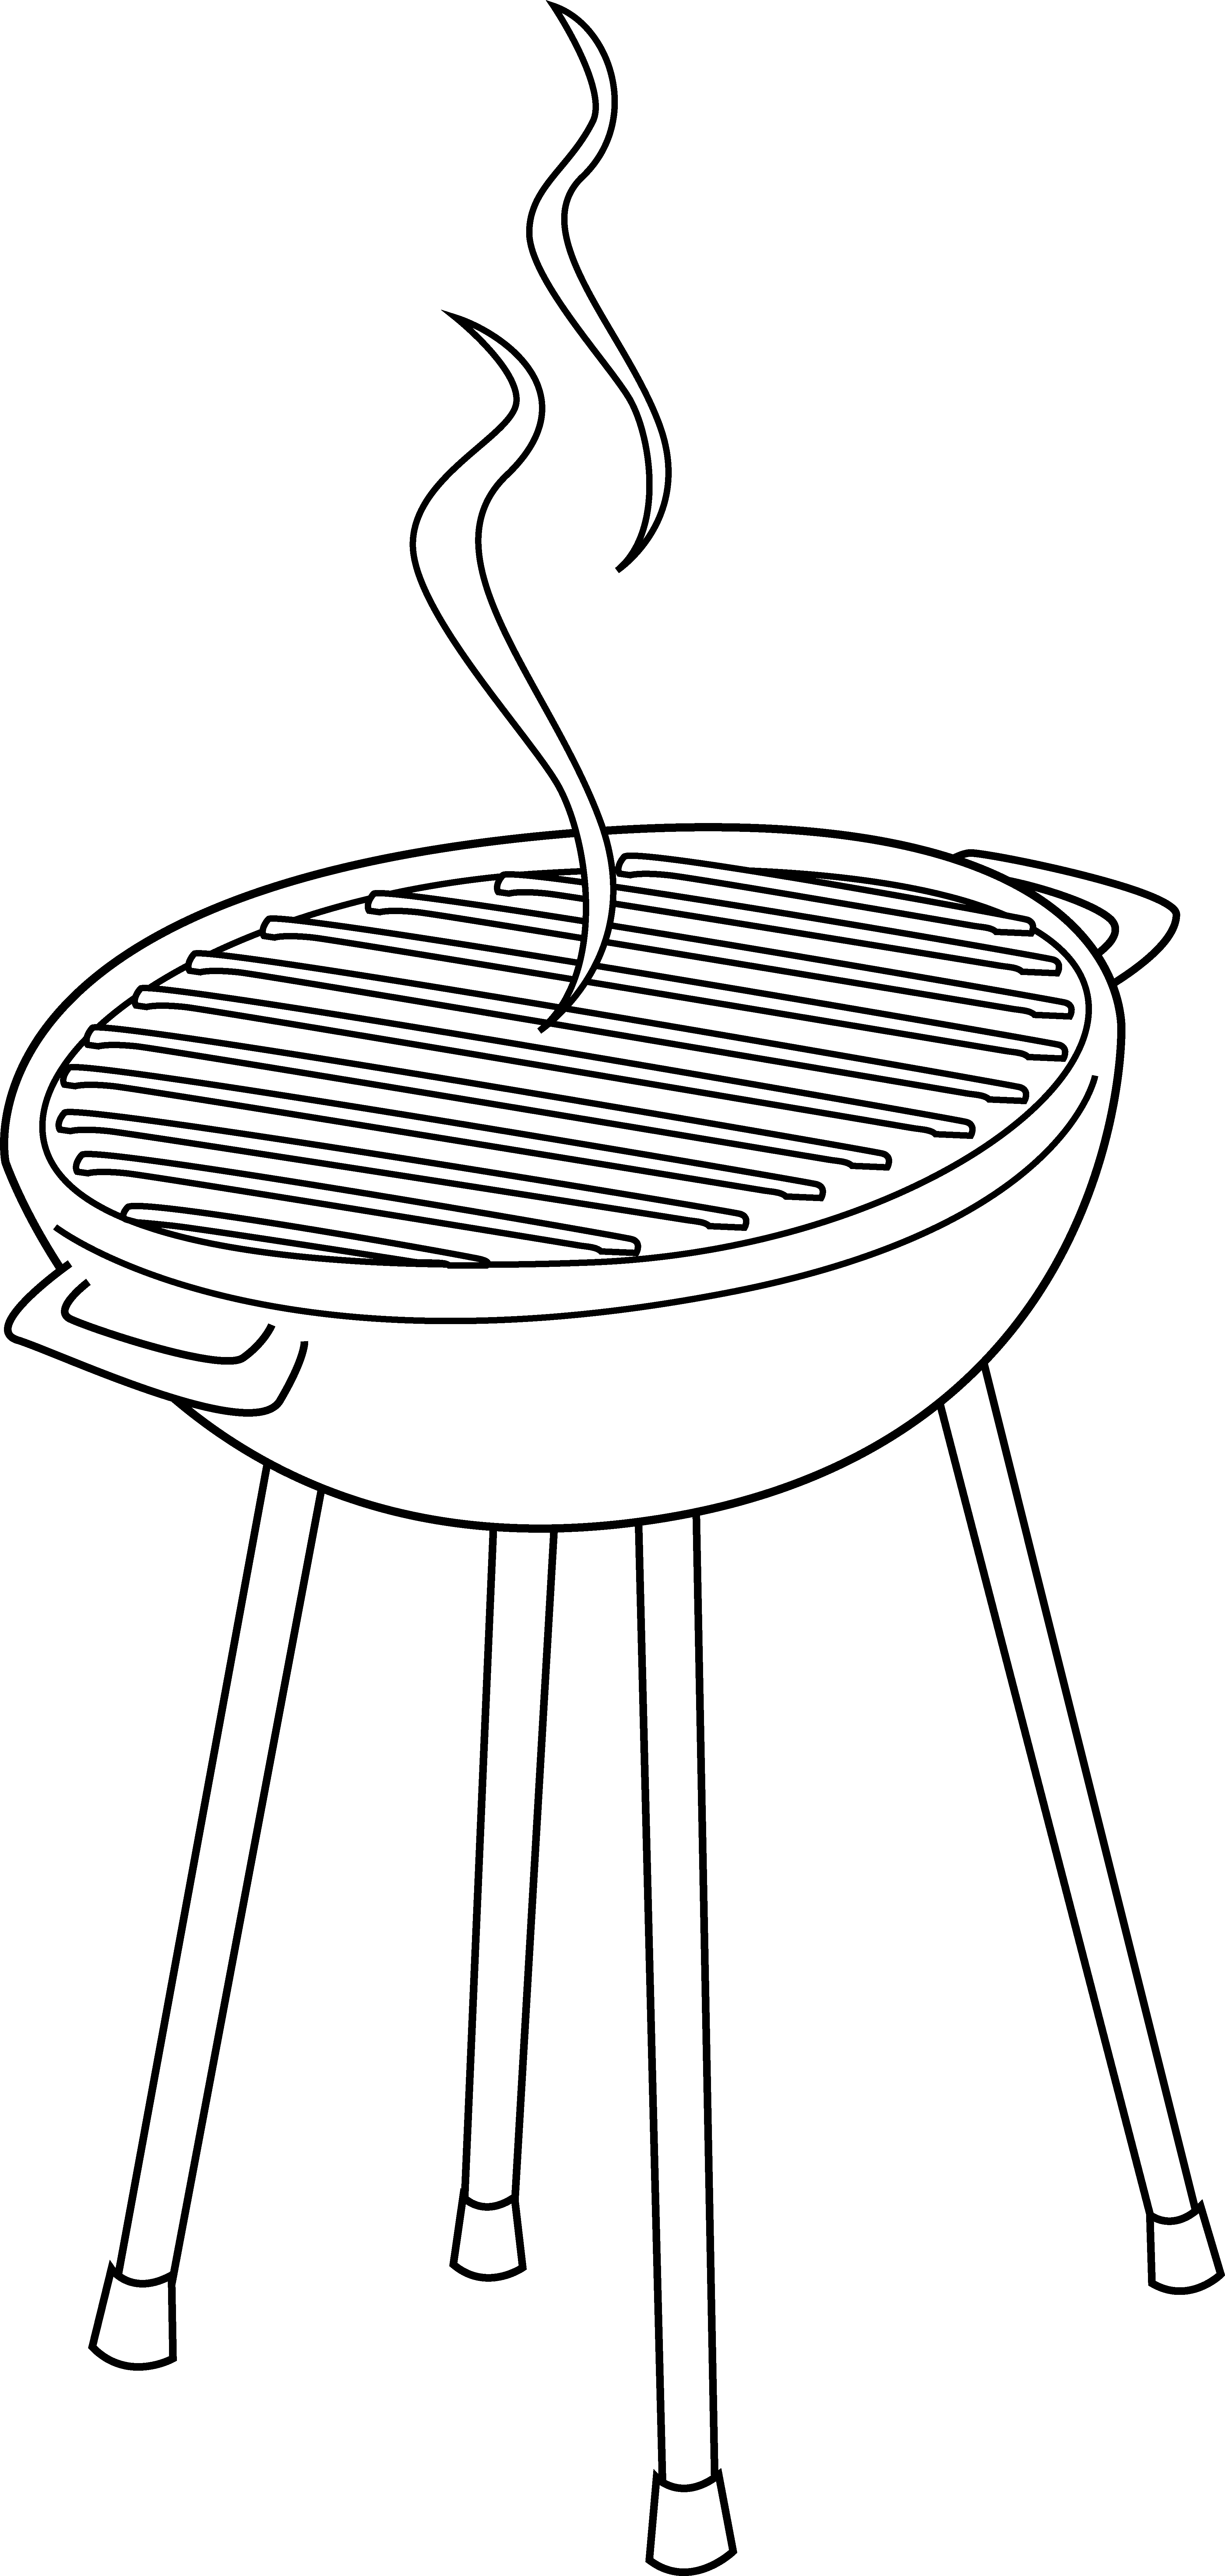 Barbecue vector bbq pit. Grill clipart drawn